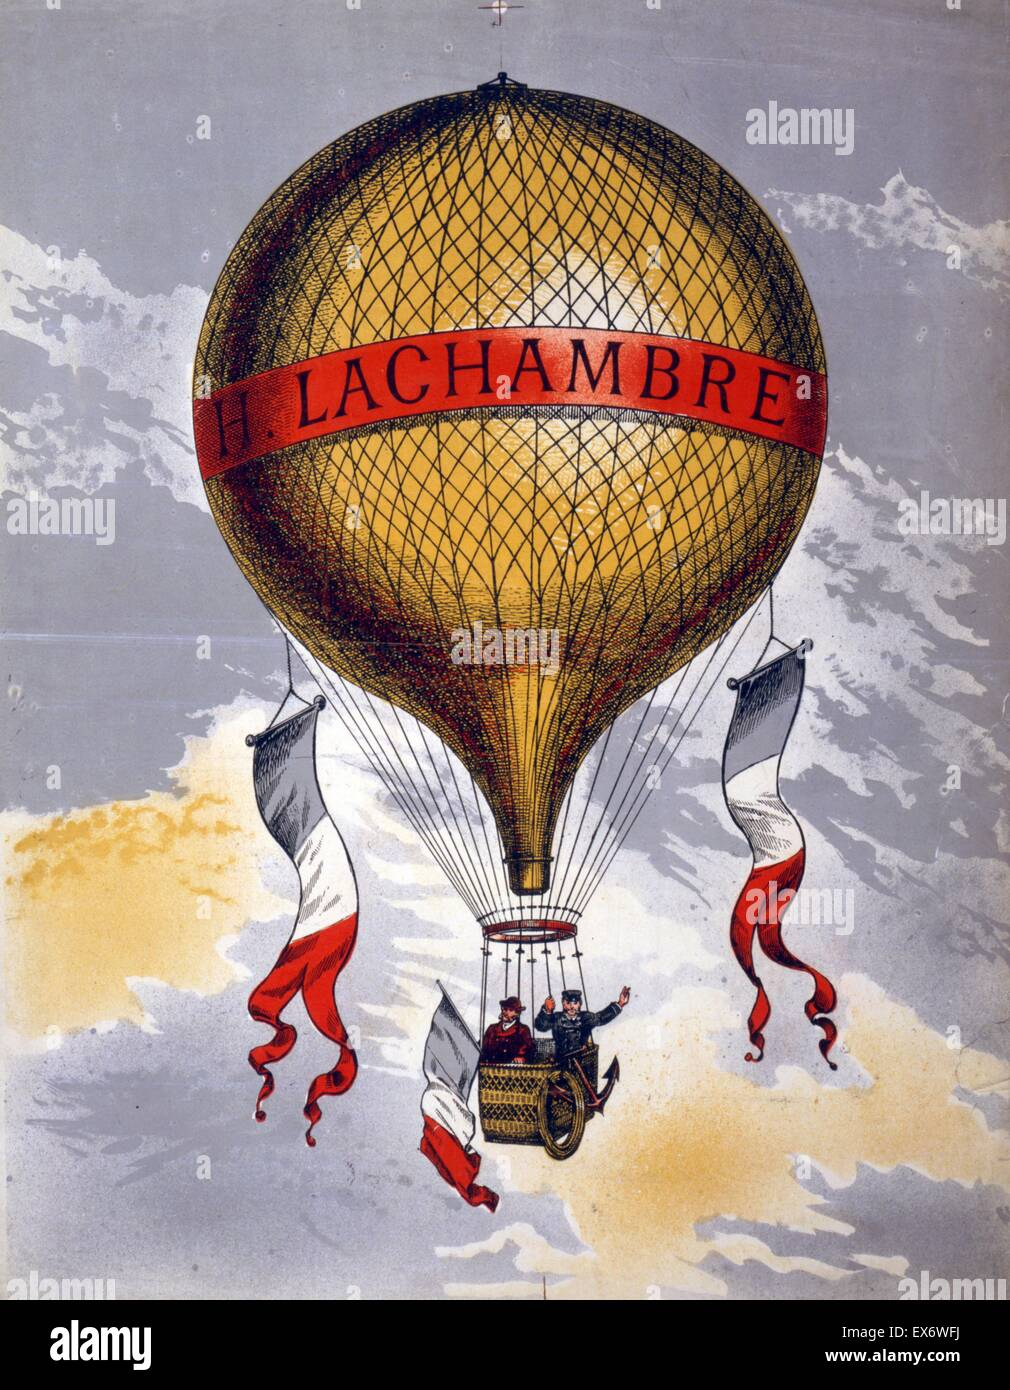 Colour lithograph advertising a balloon manufactured by the French balloon manufacturer, Henri Lachambre (1846-1904). - Stock Image